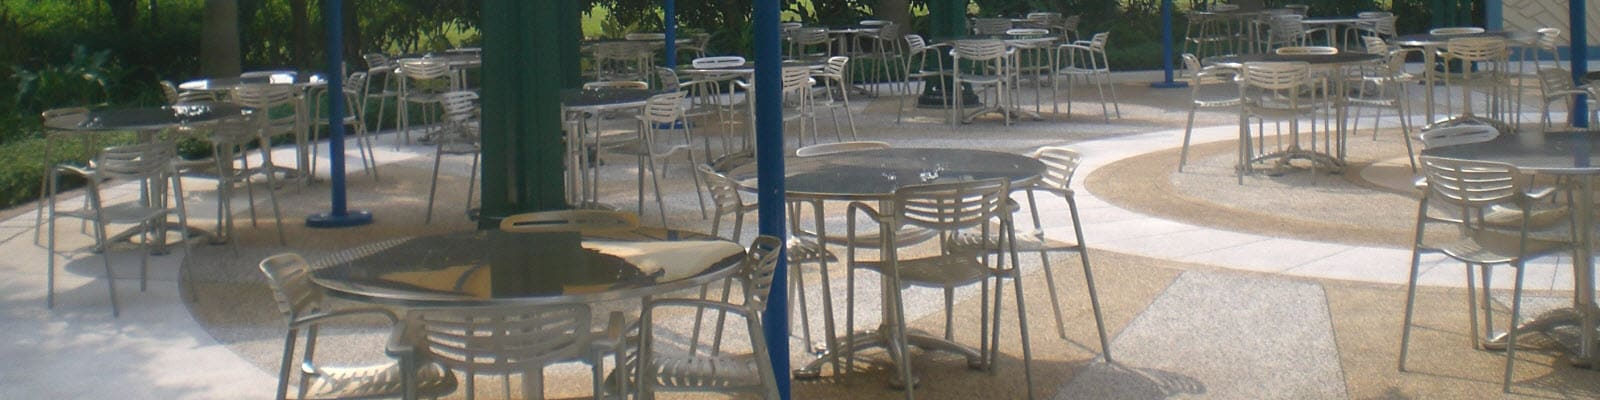 Aluminum patio tables and chairs